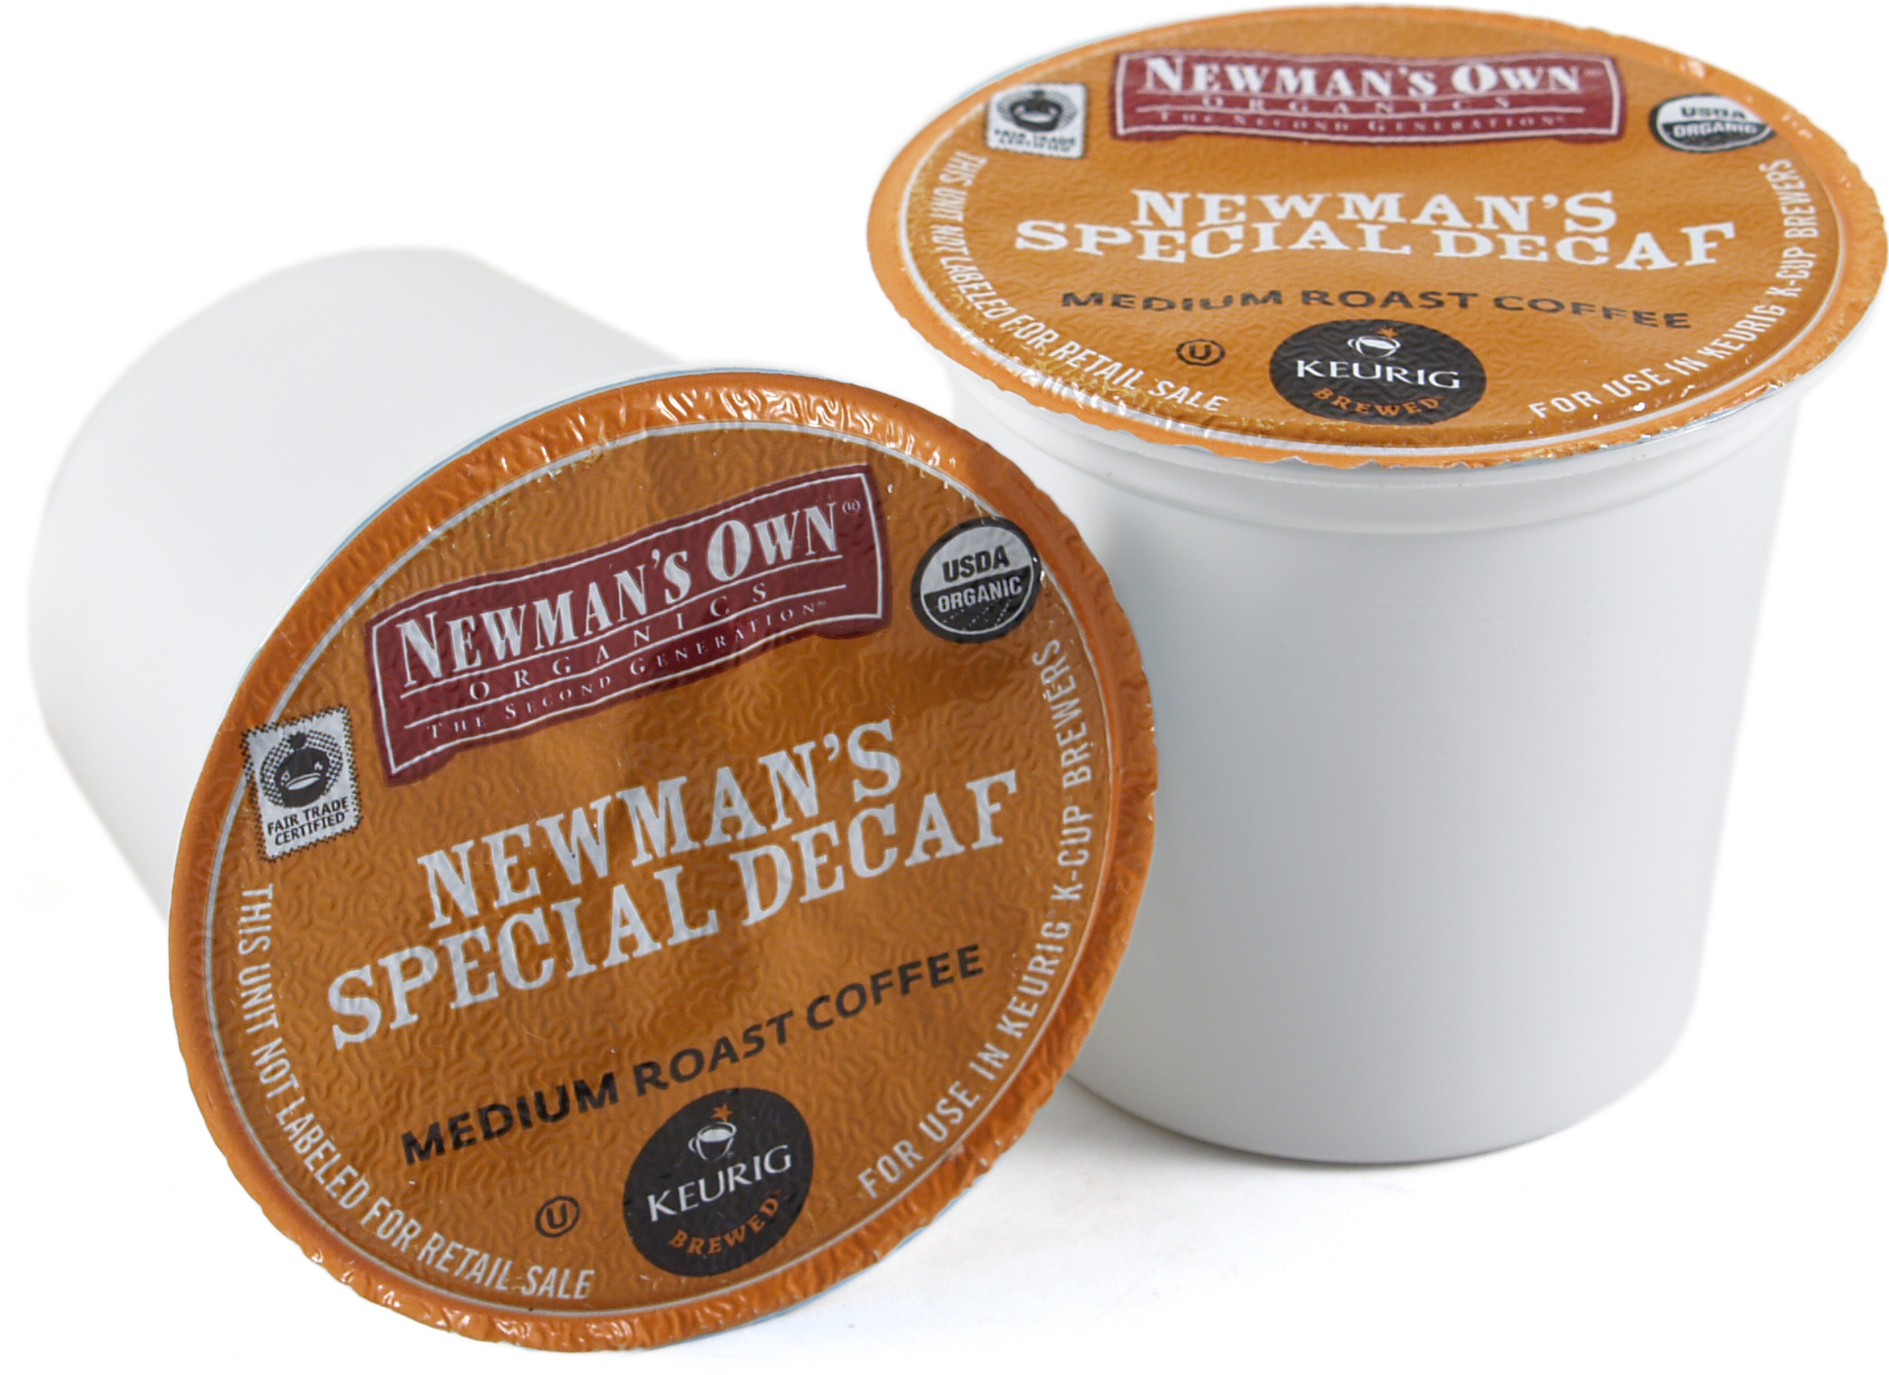 Newman's Own Organics Special Blend Decaf Coffee Keurig K-Cups, 180 Count - Exceeded Best-By Date